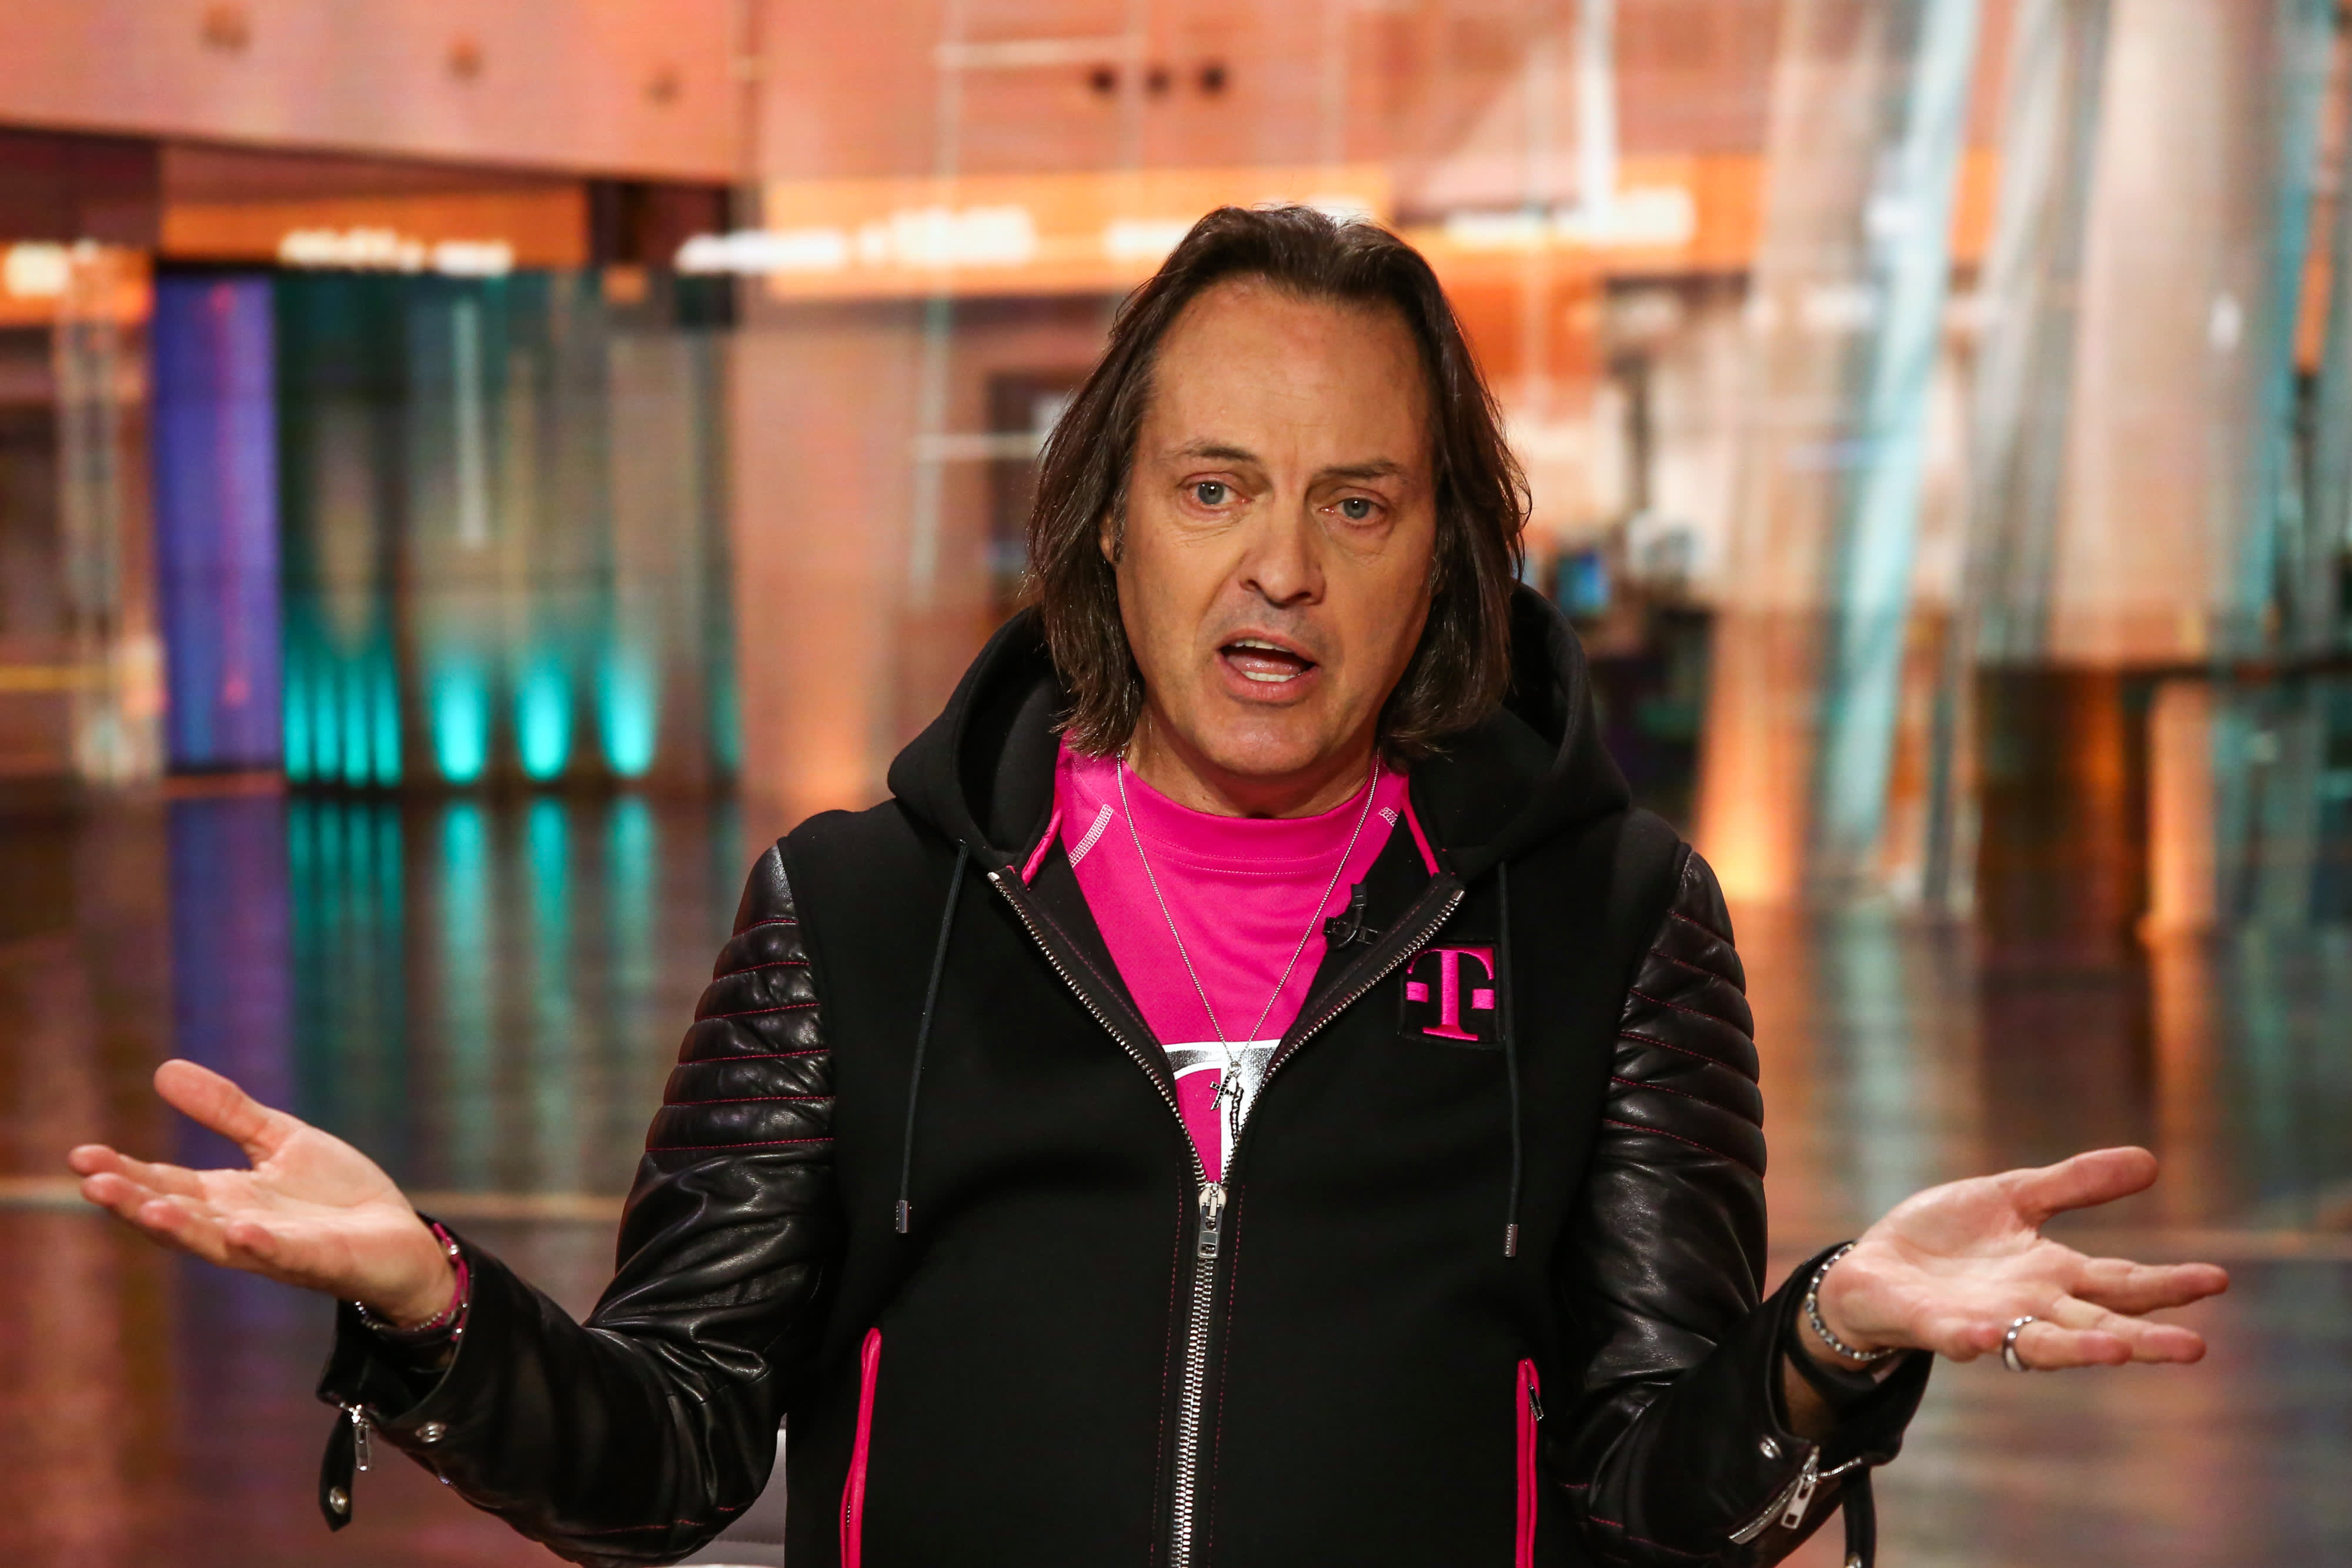 T-Mobile CEO John Legere isn't taking the WeWork CEO job, sources say